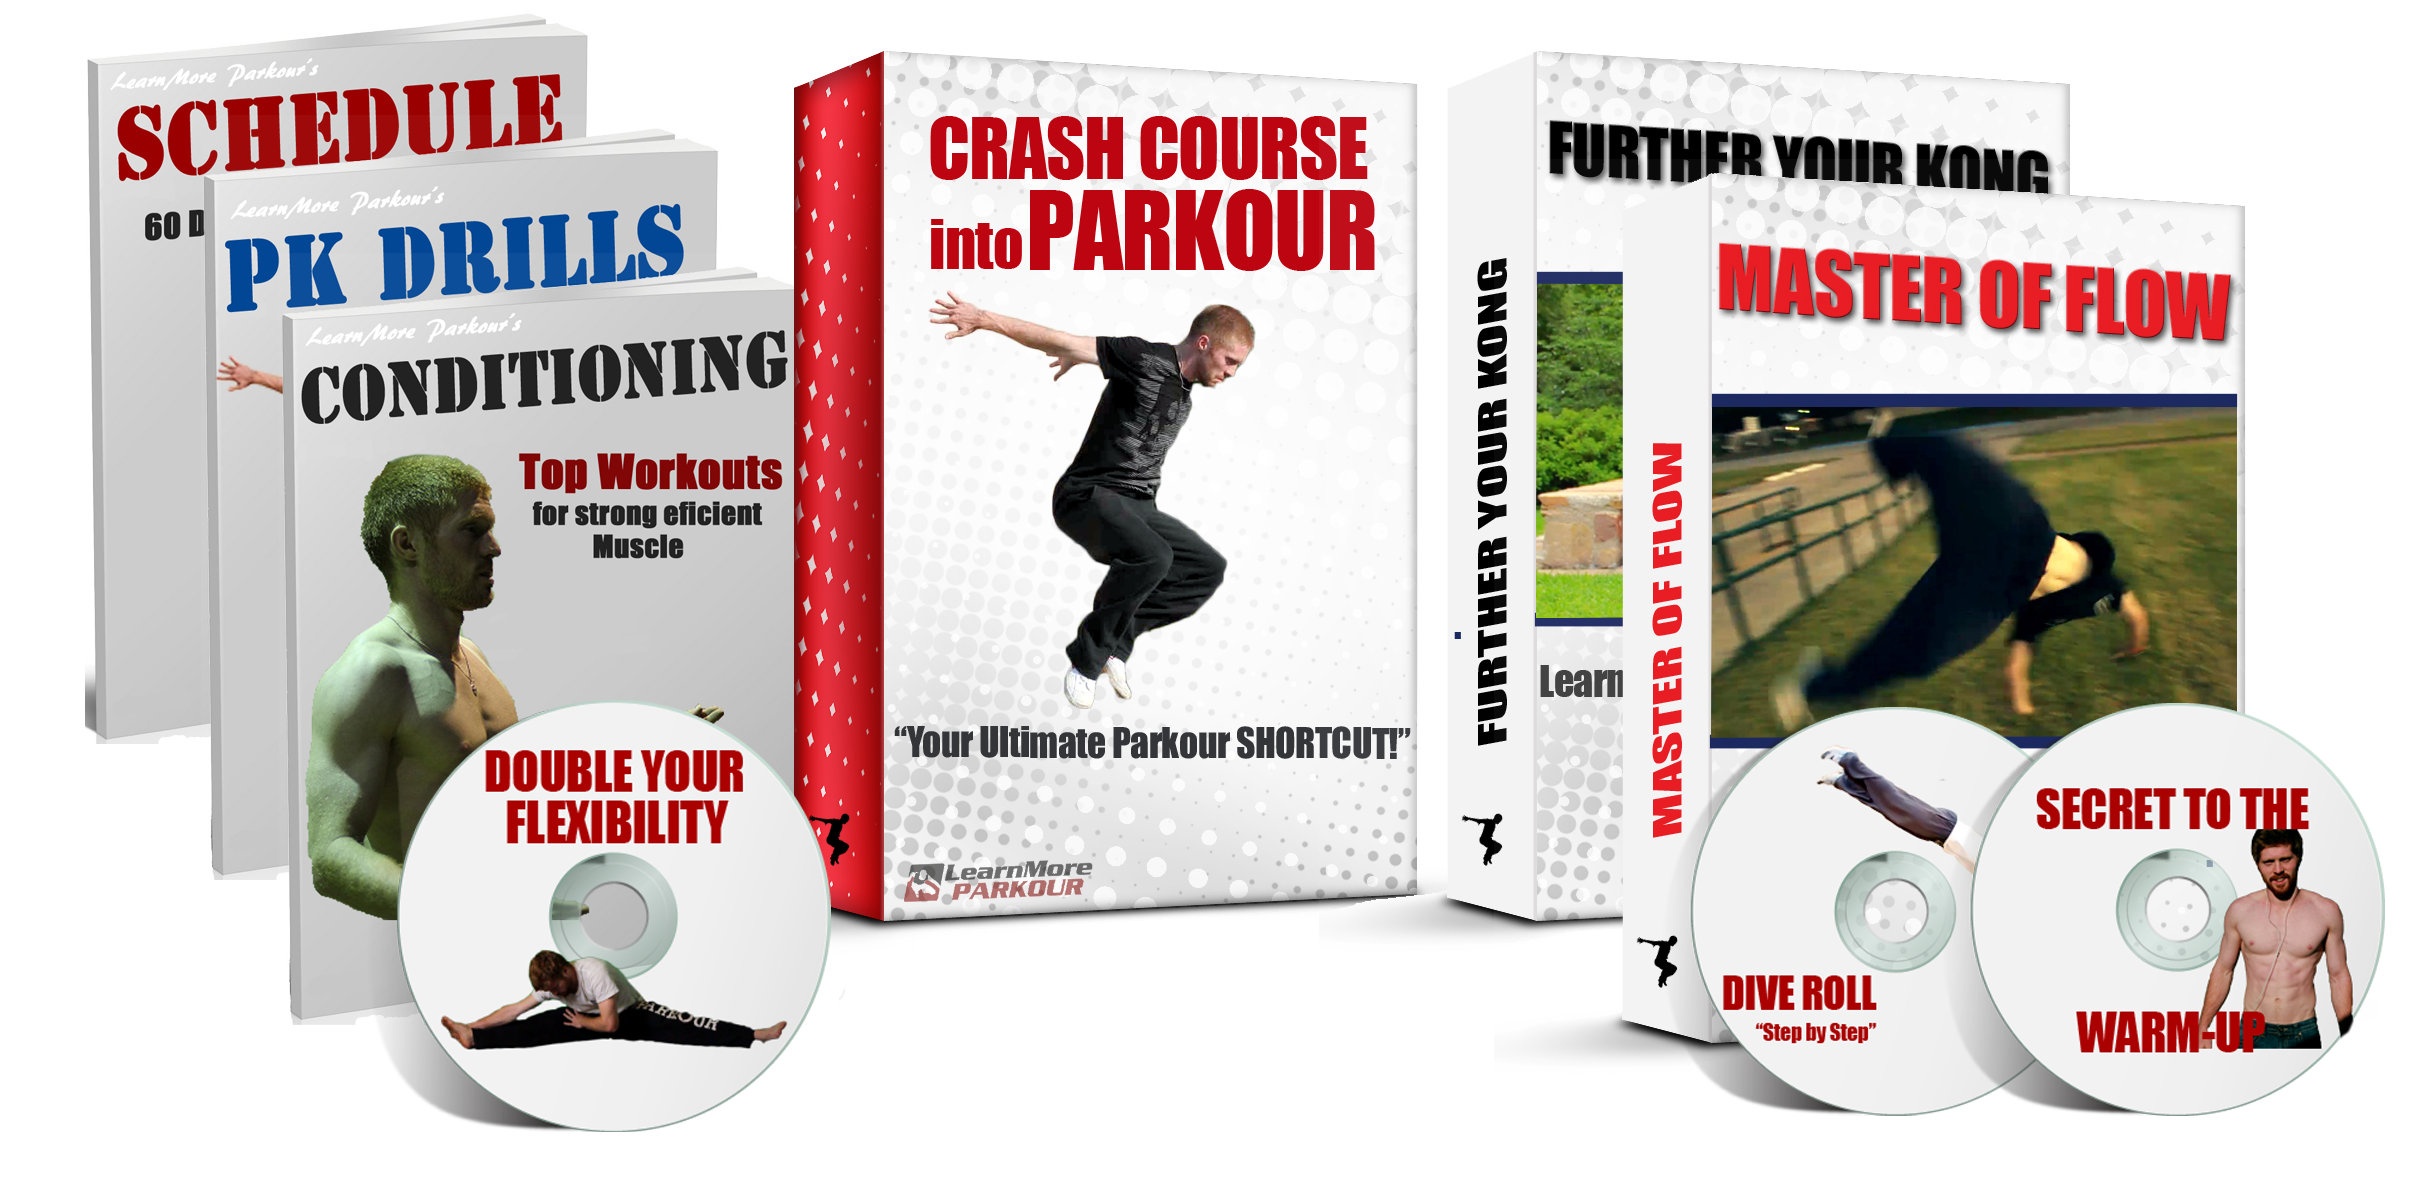 crash course into parkour subscriber special u2013 37 u2014 tapp brothers